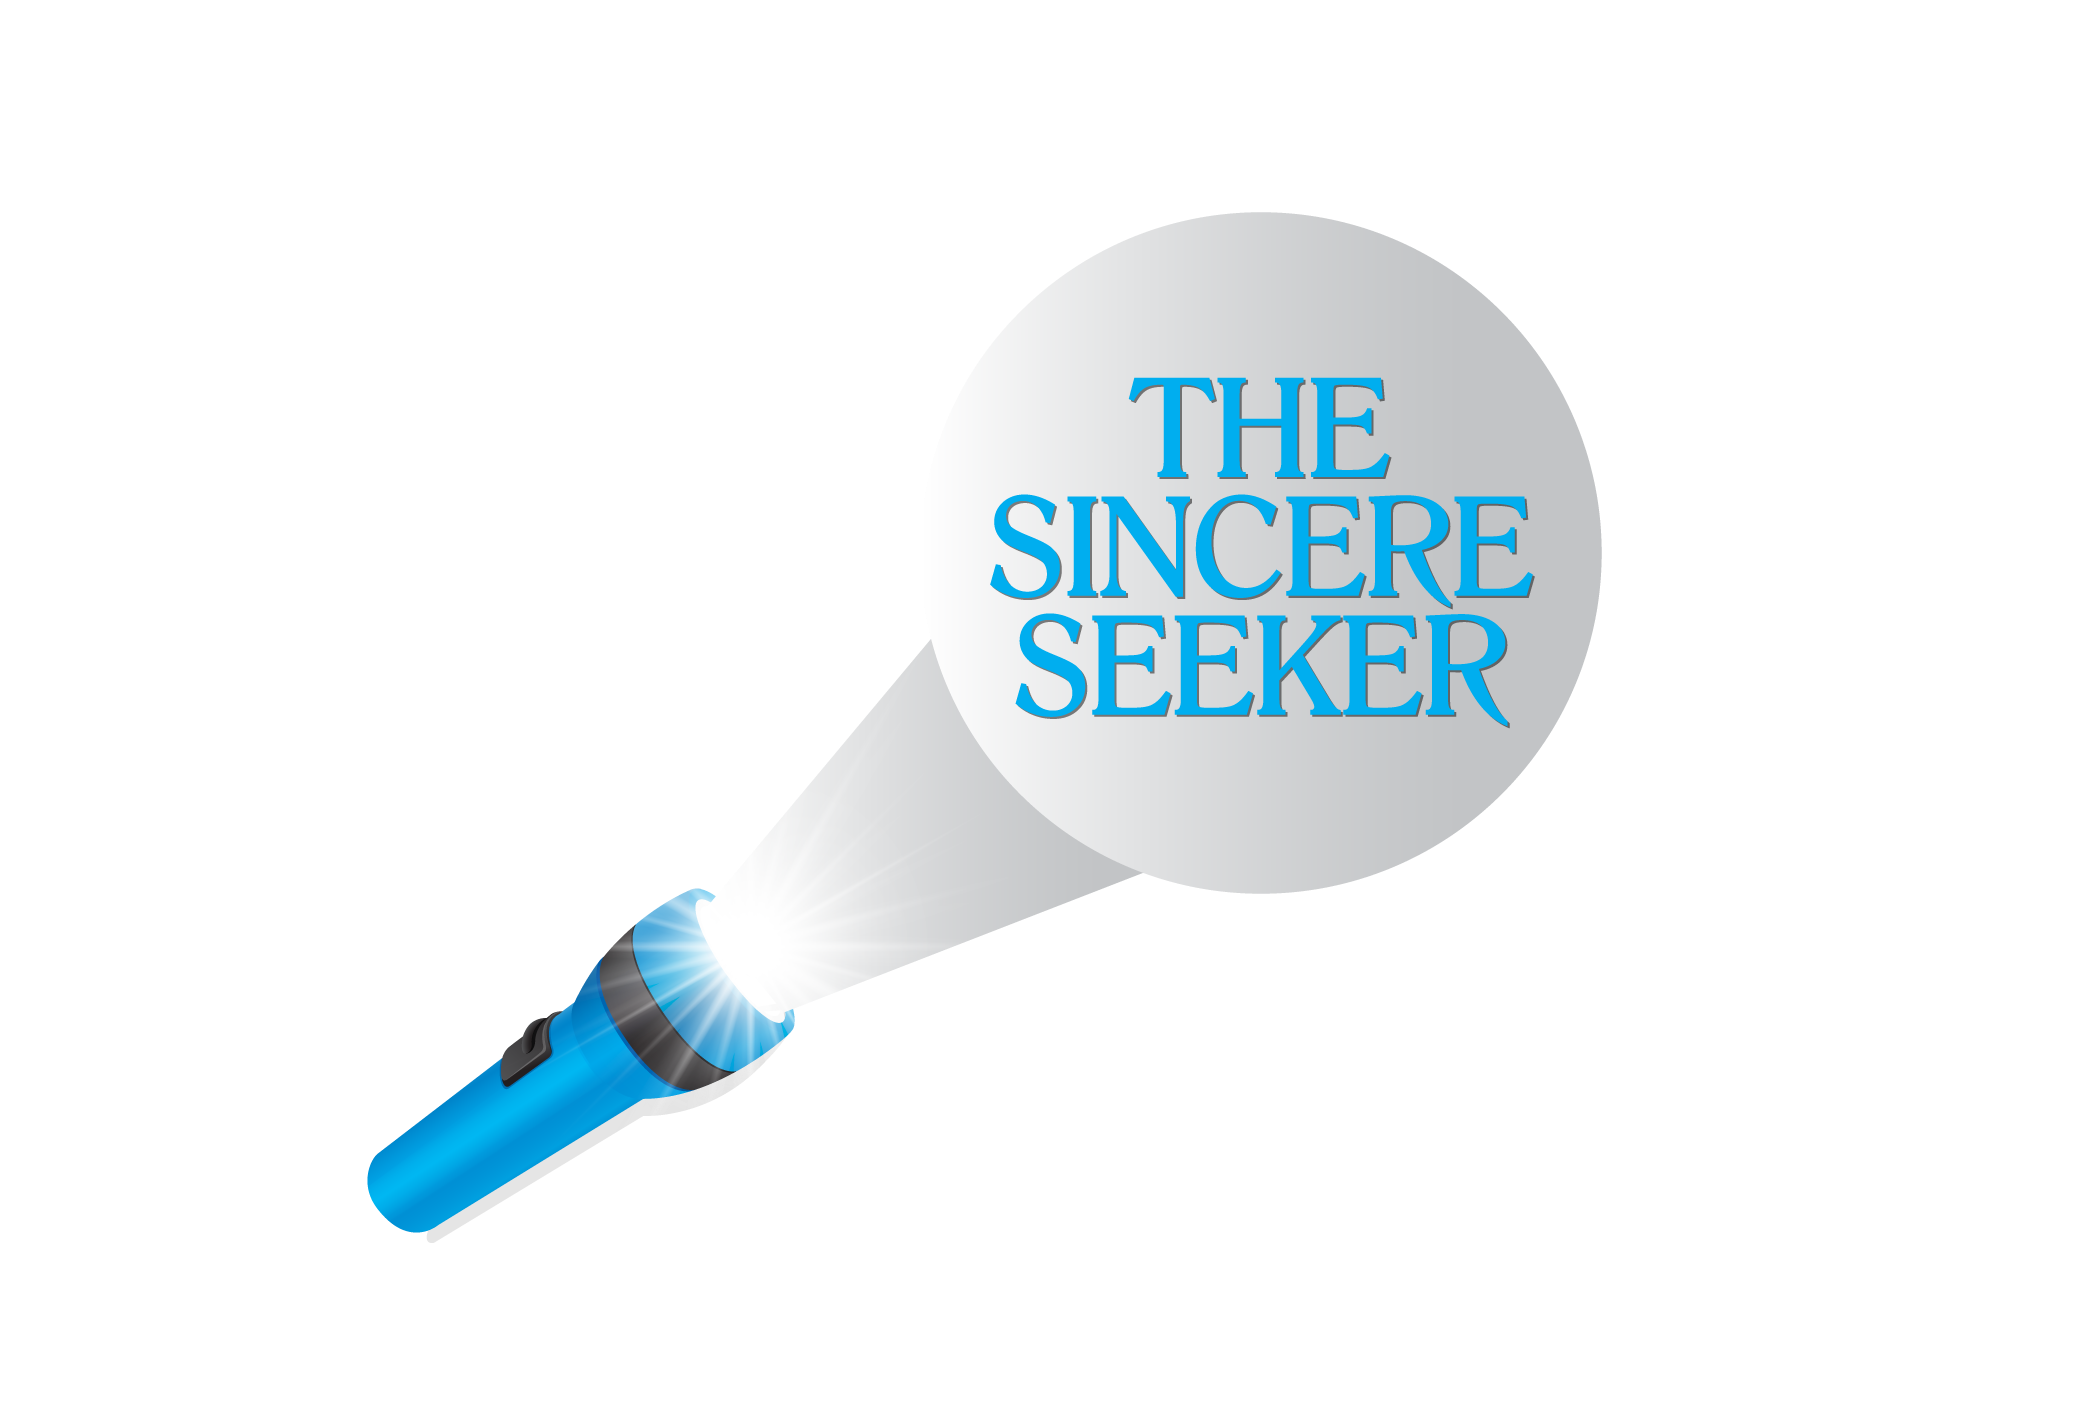 The Sincere Seeker